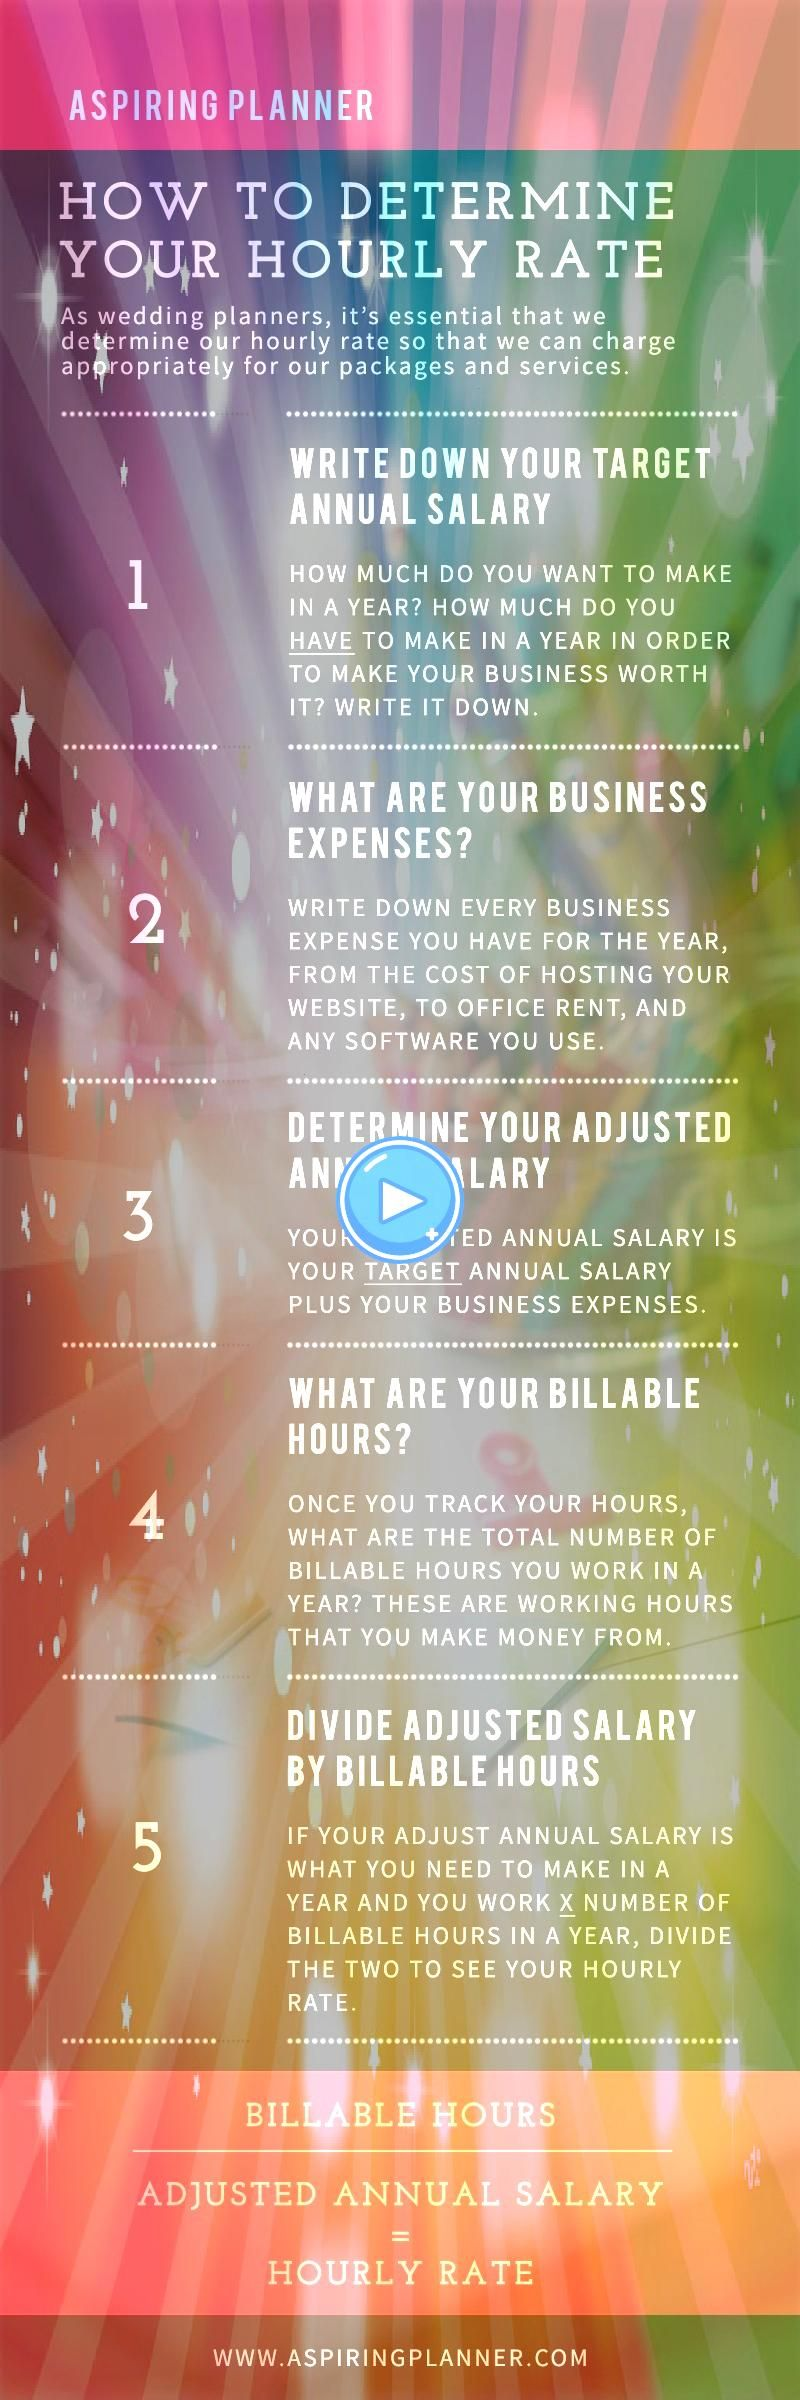 For Wedding Planners How to Price Your Wedding Services and Determine Your Hourly Rate Wedding Planners :: How to Price Your Wedding Services and Determine Your Hourly Rate | For Wedding Planners :: How to Price Your Wedding Services and Determine Your Hourly Rate |   Printable/Editable Wedding Day Template  Detailed Version  Tax Deductions| Tax Write-Offs| Self Employed| Entrepreneur| Solopreneur| Small Business  How to Respond When Clients Think You Are Too Expe...